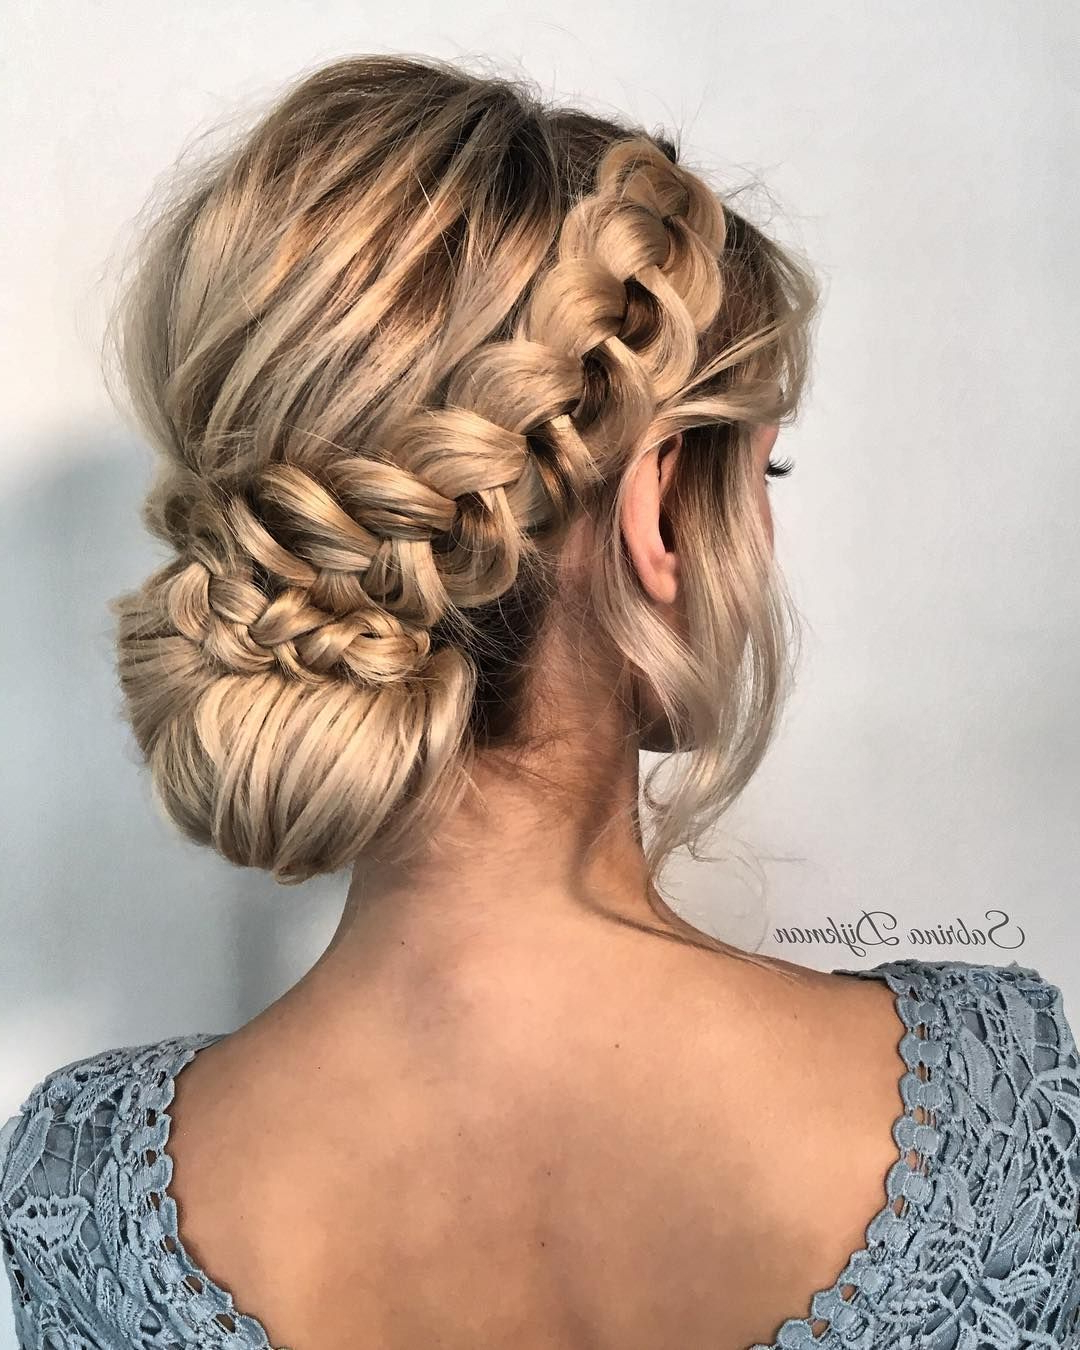 Latest Tender Shapely Curls Hairstyles For A Romantic Wedding Look Within 92 Drop Dead Gorgeous Wedding Hairstyles For Every Bride To Be (Gallery 16 of 20)